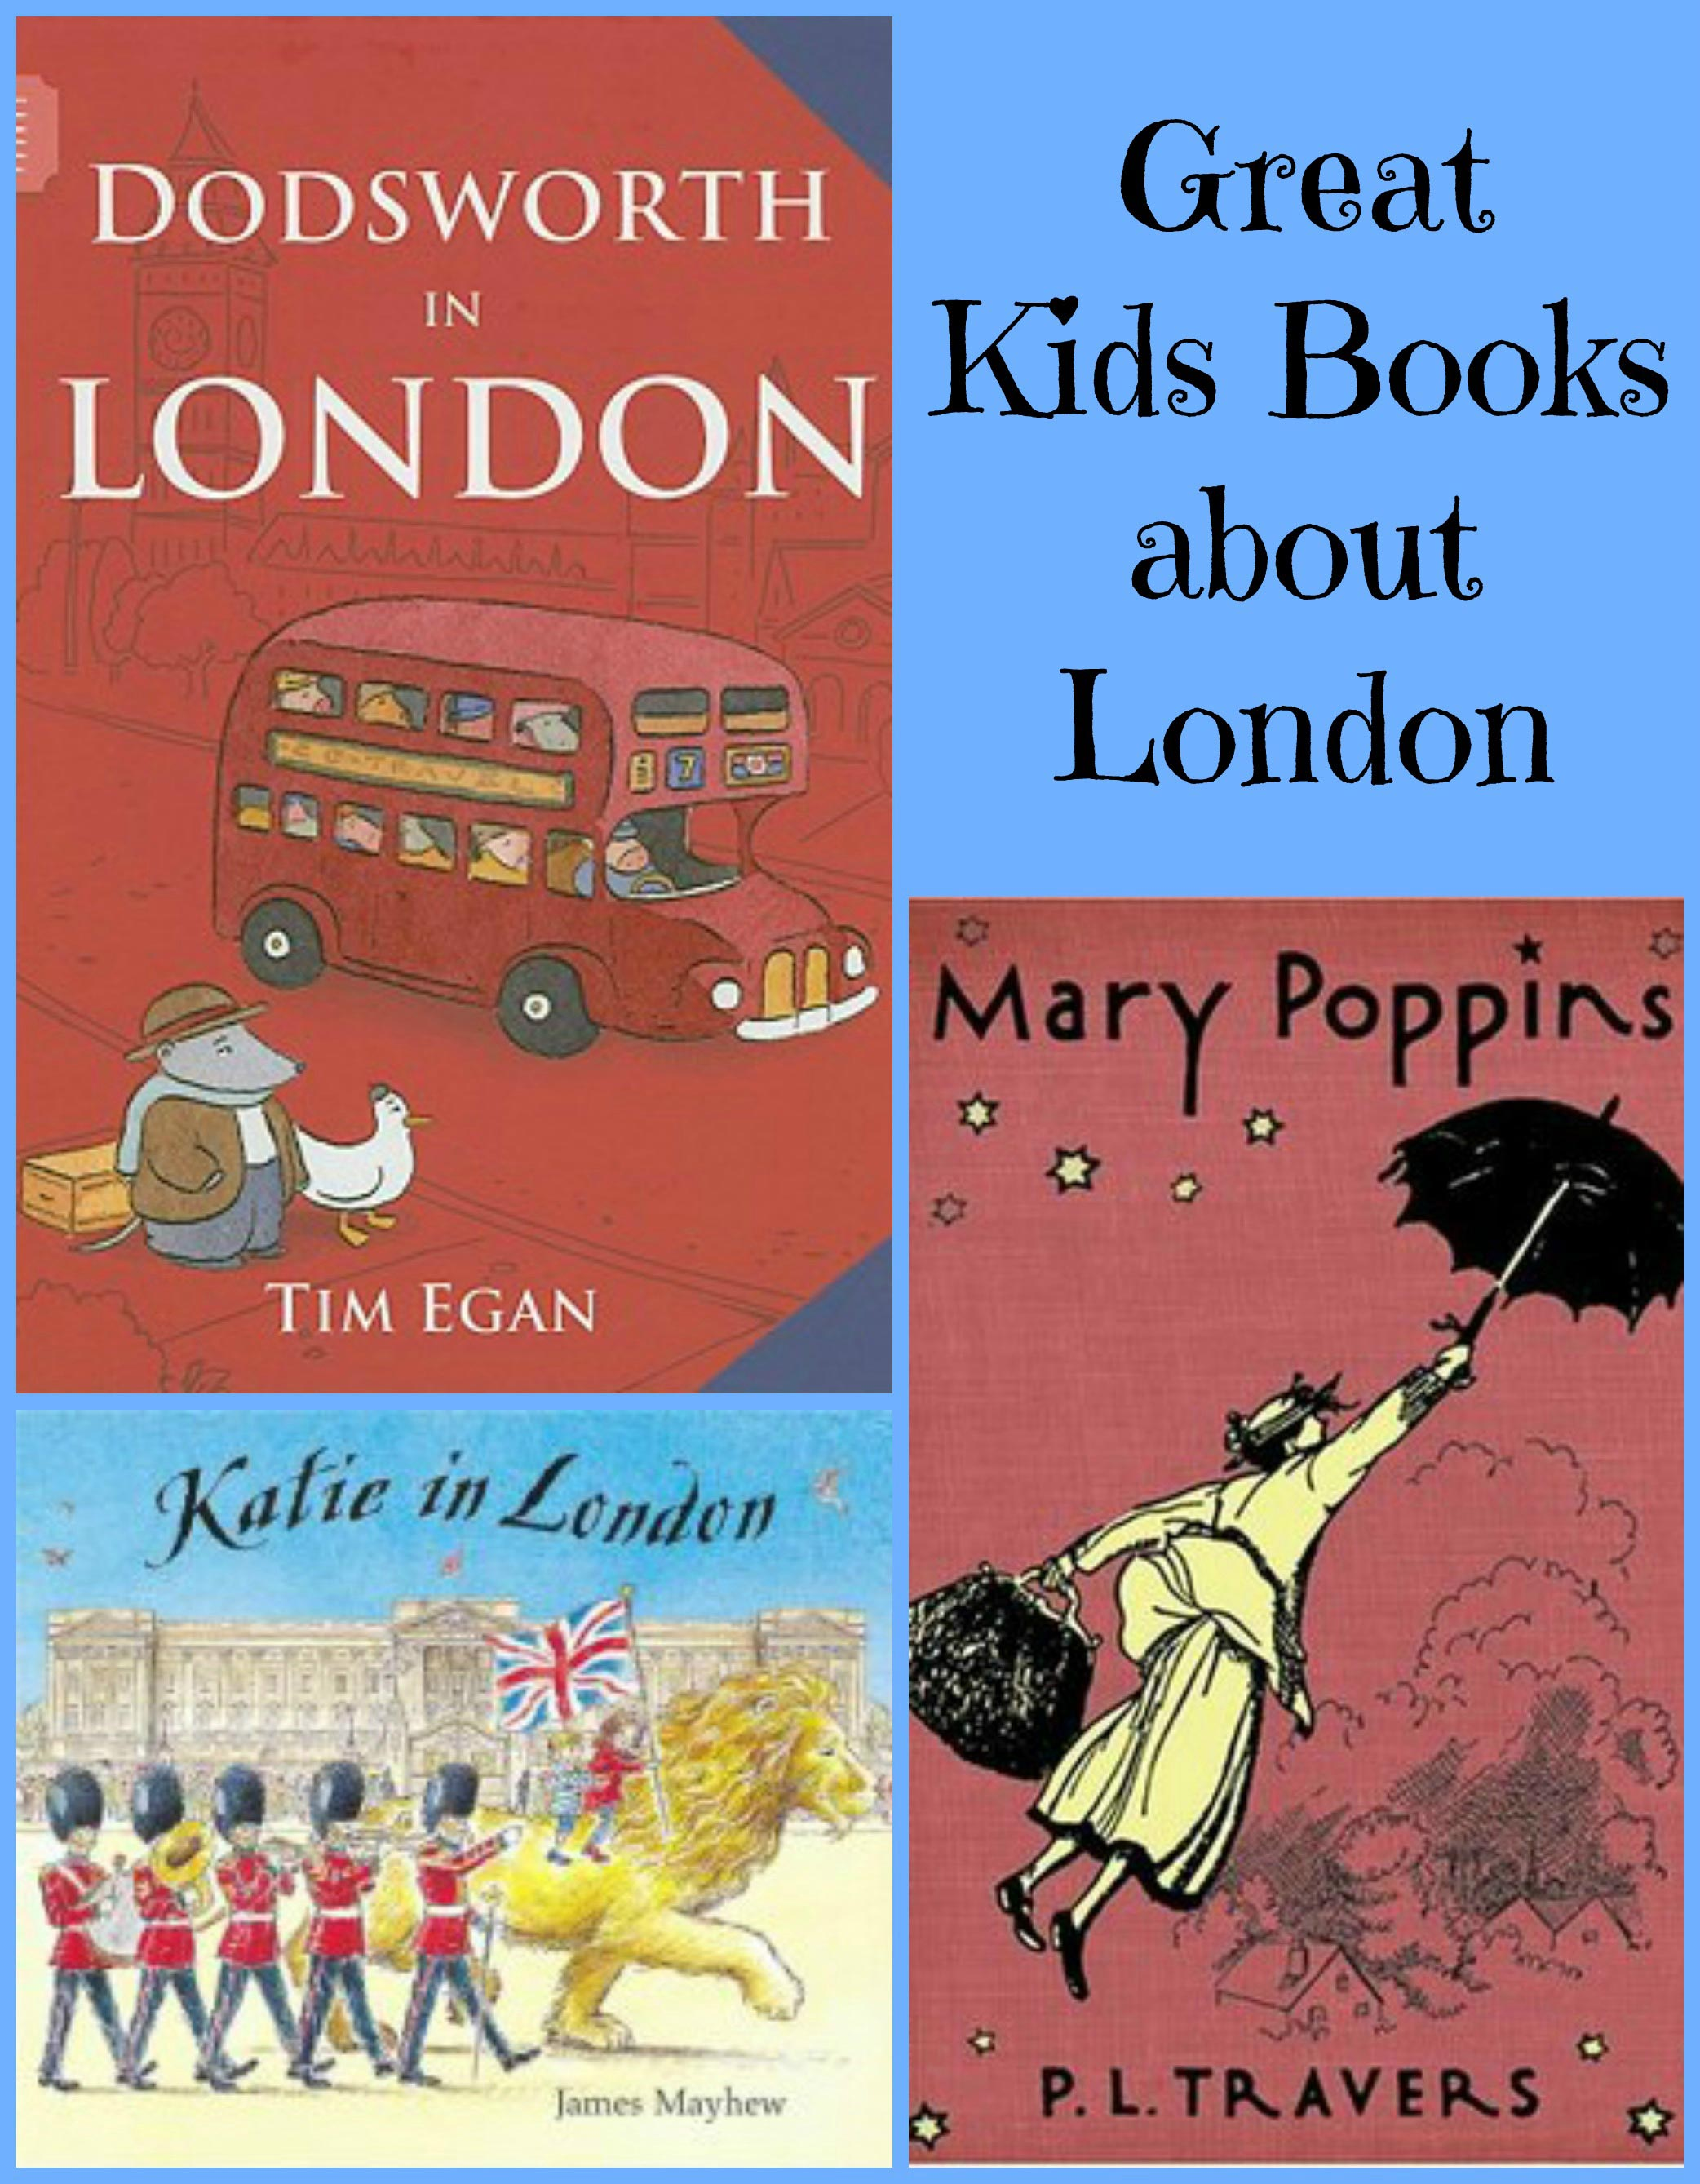 Explore London Through Kids Books